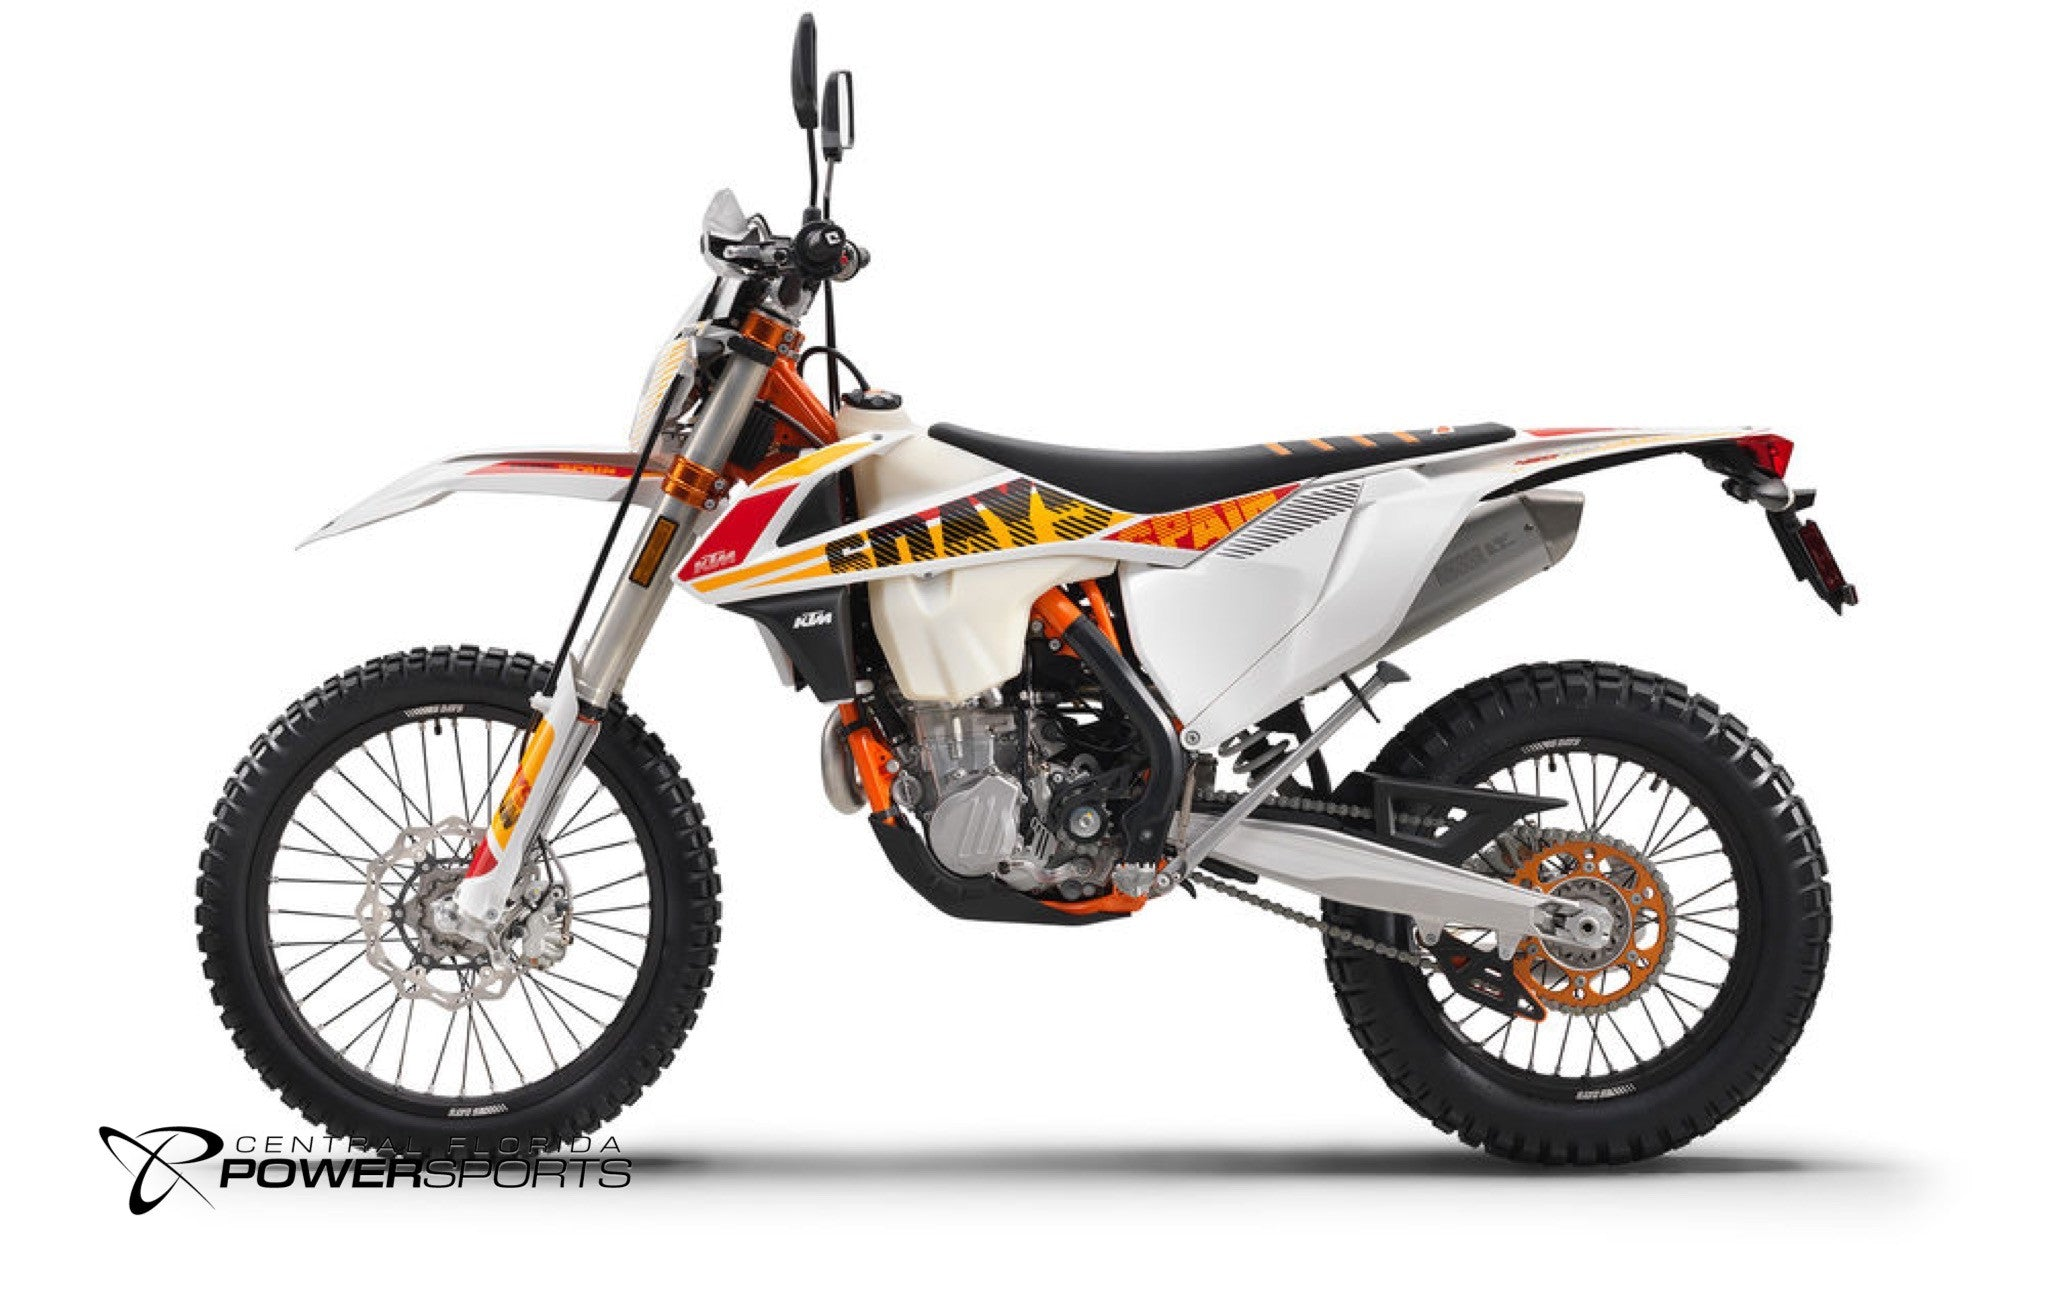 Exc F Six Days Motorcycle For Sale Central Florida Powersports